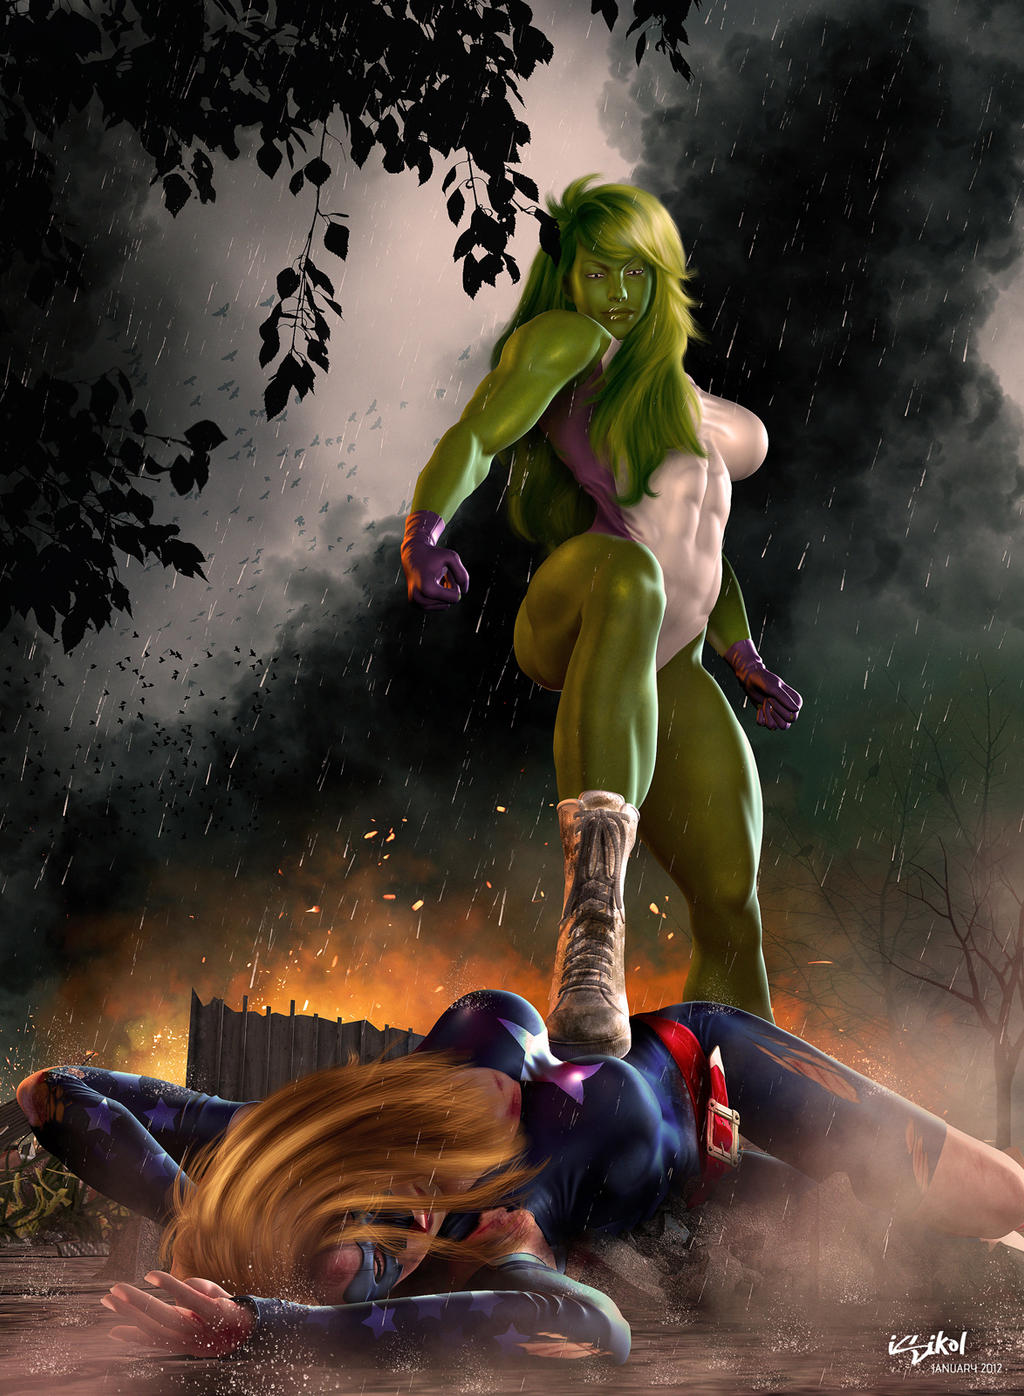 She HULK - YOU ARE NO MATCH FOR ME! by isikol